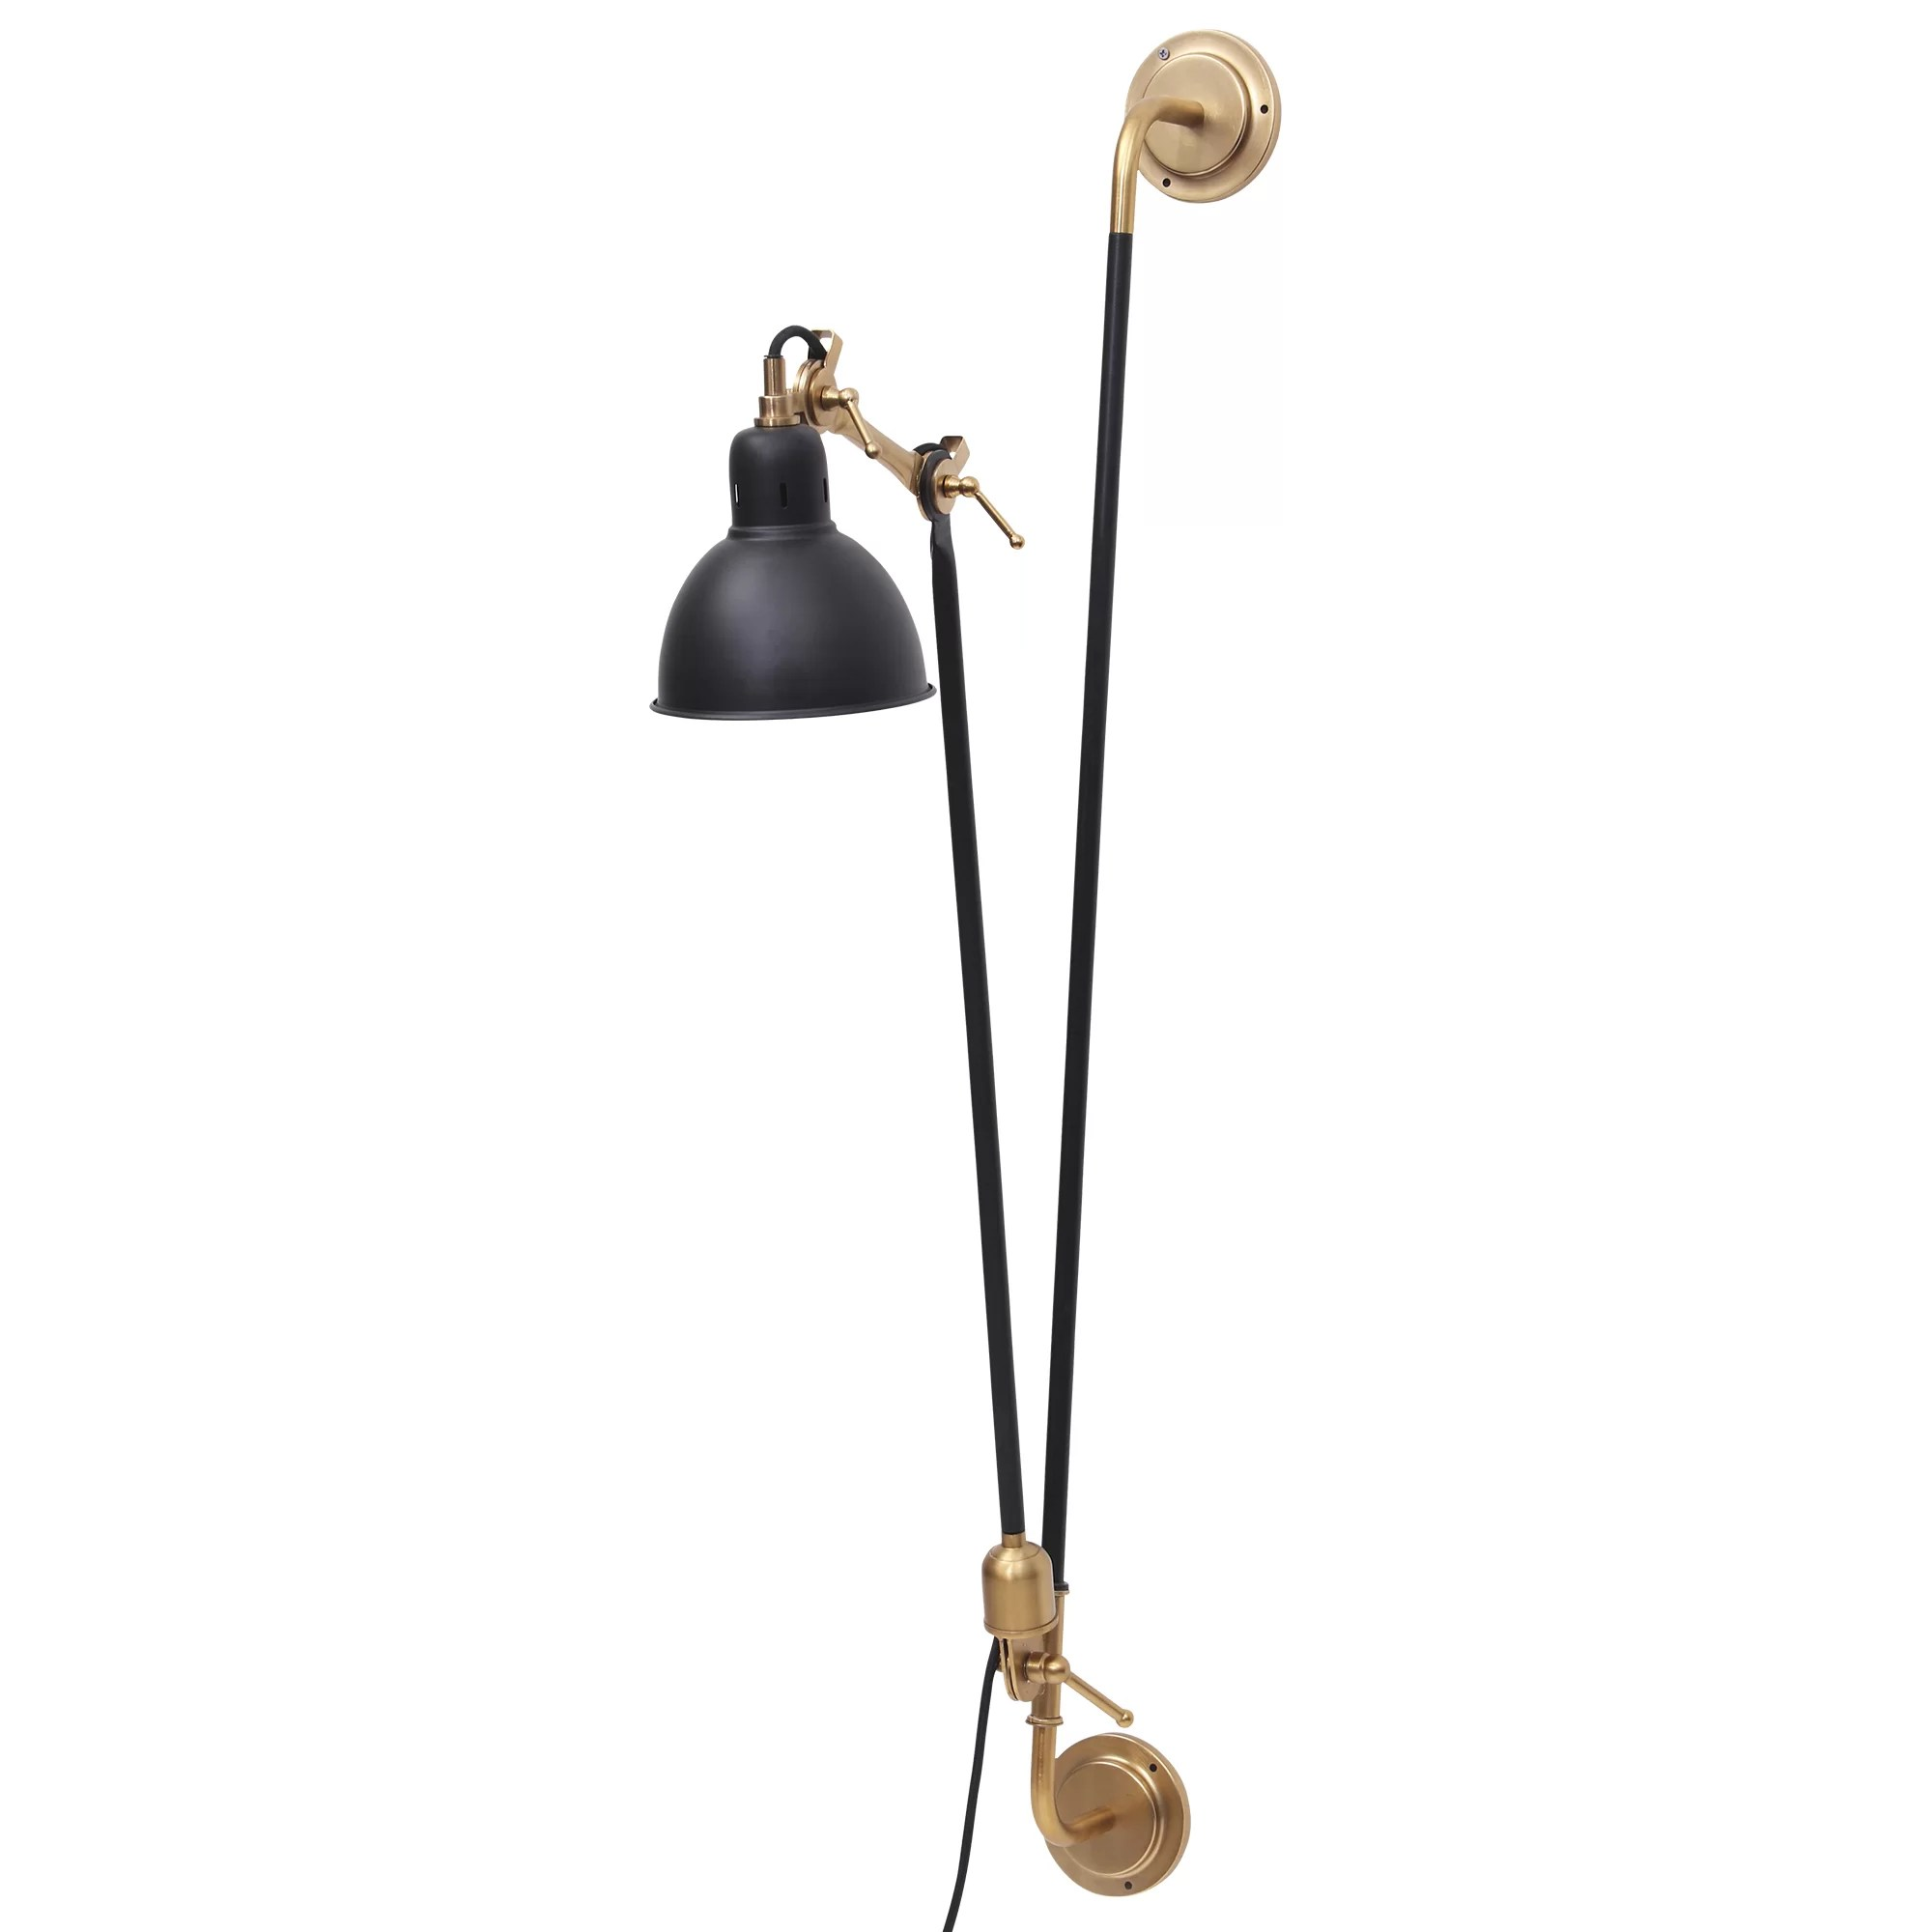 Arm Lamp Hamidou Swing Arm Lamp